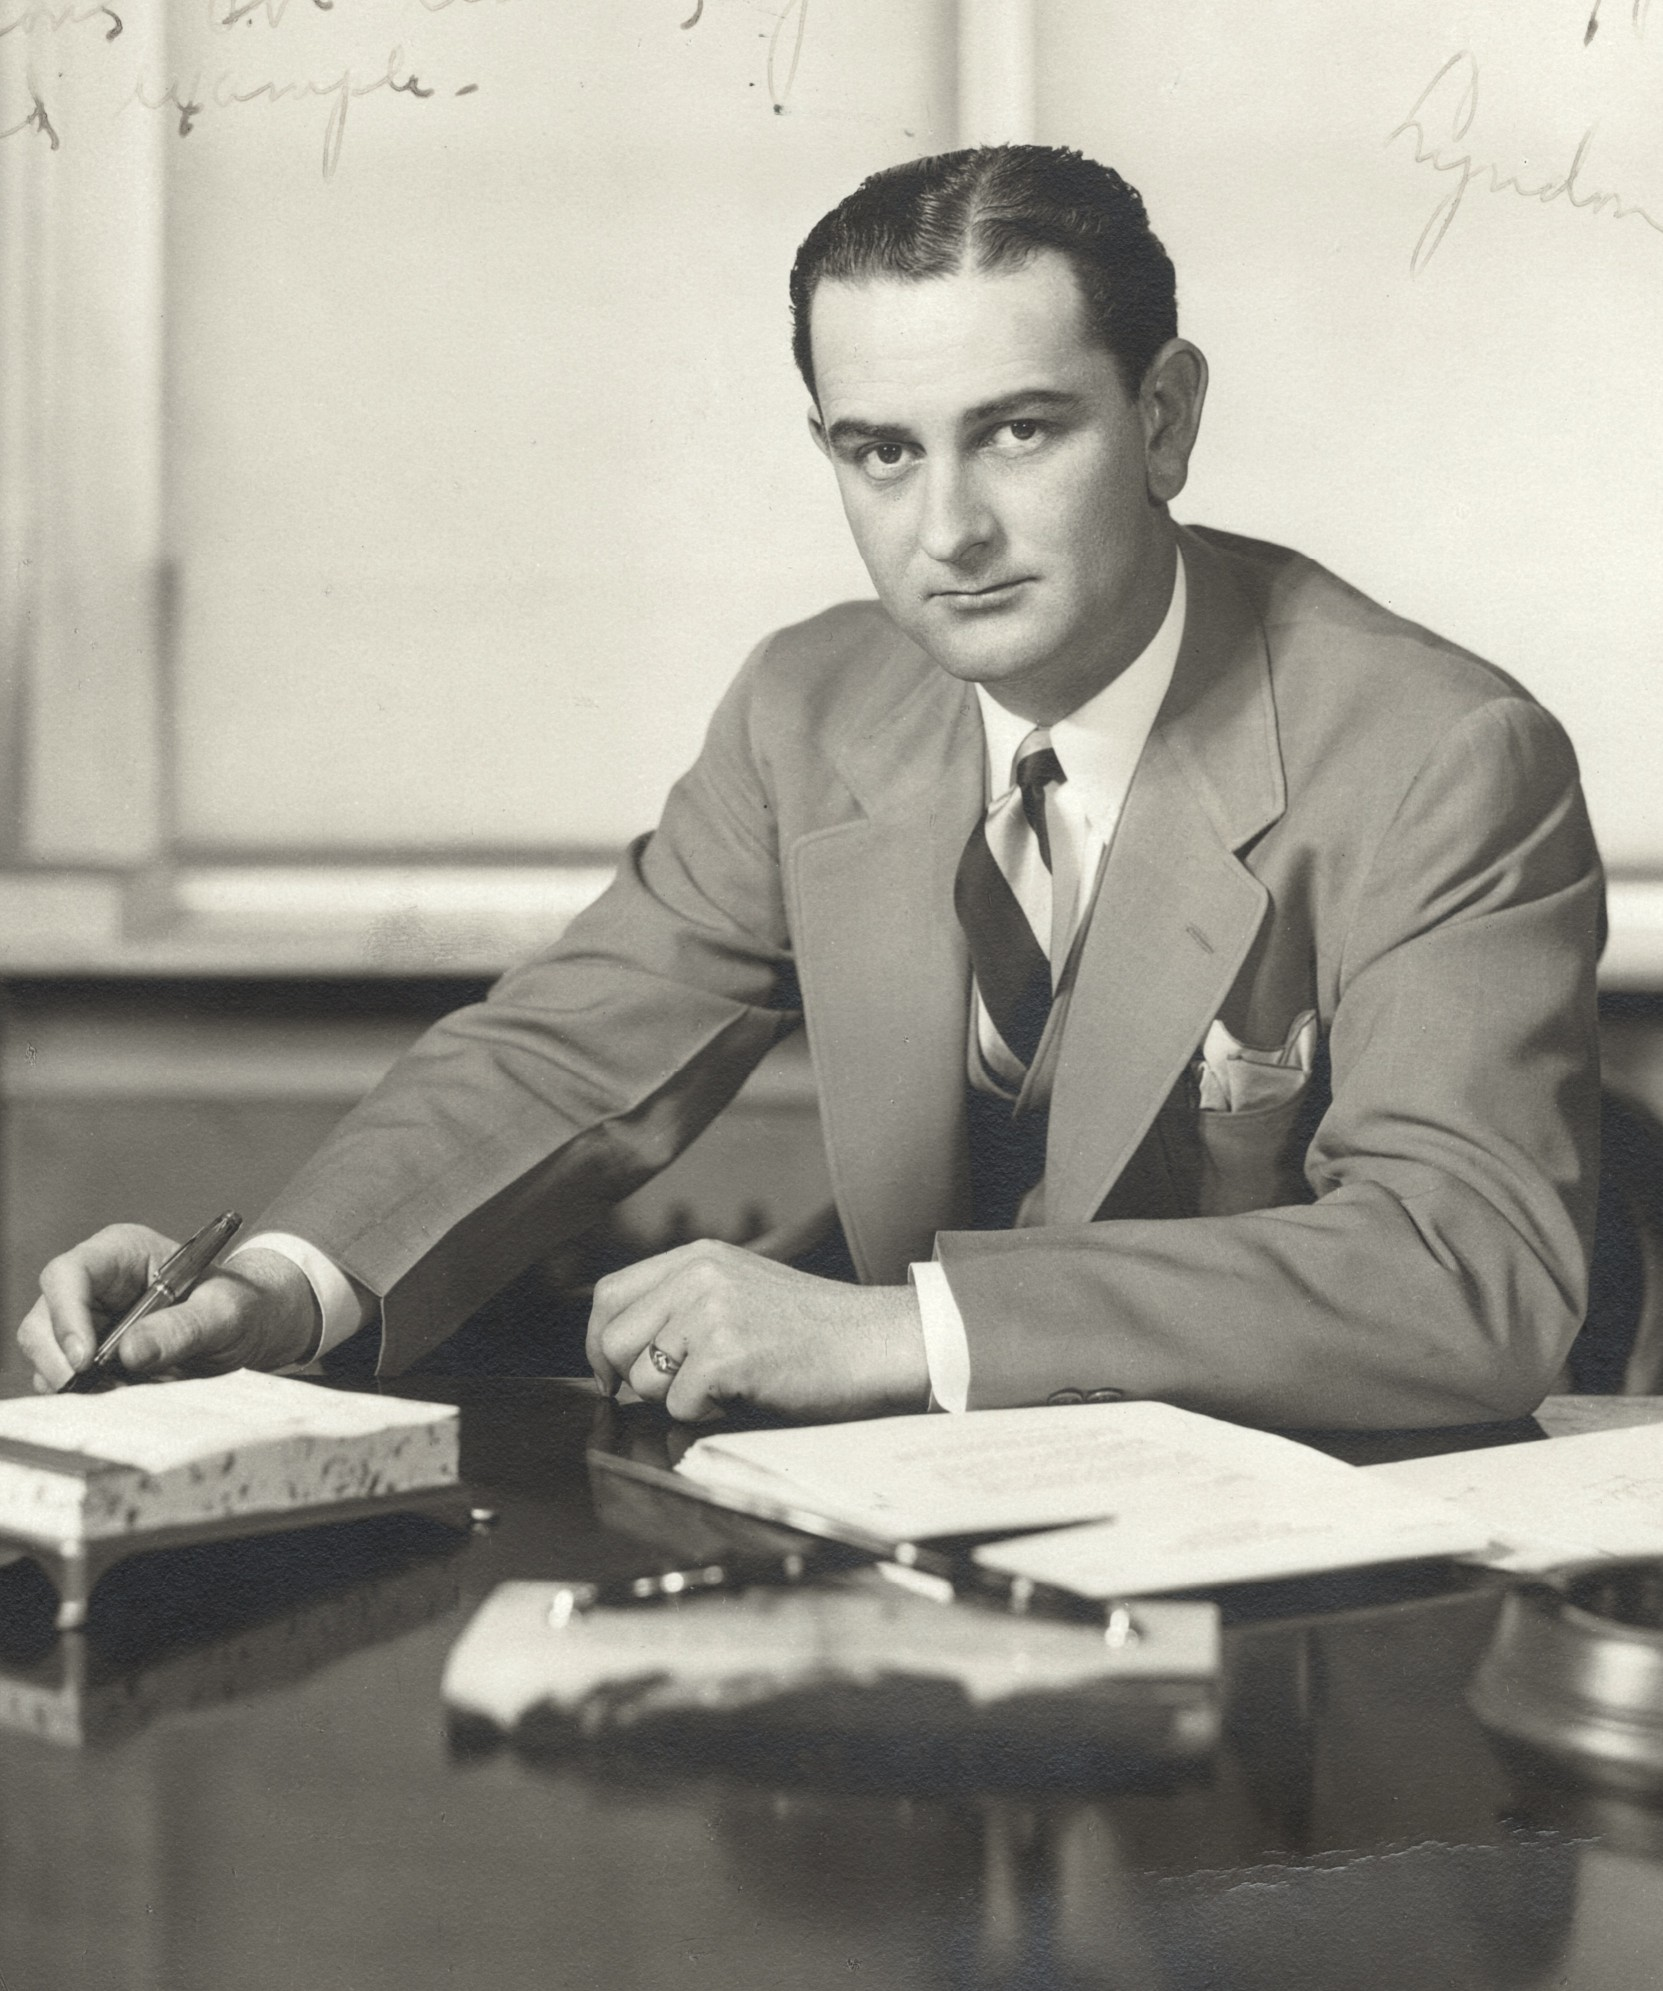 Lyndon Johnson as congressman in 1938, right after he led the successful projects at NYA.